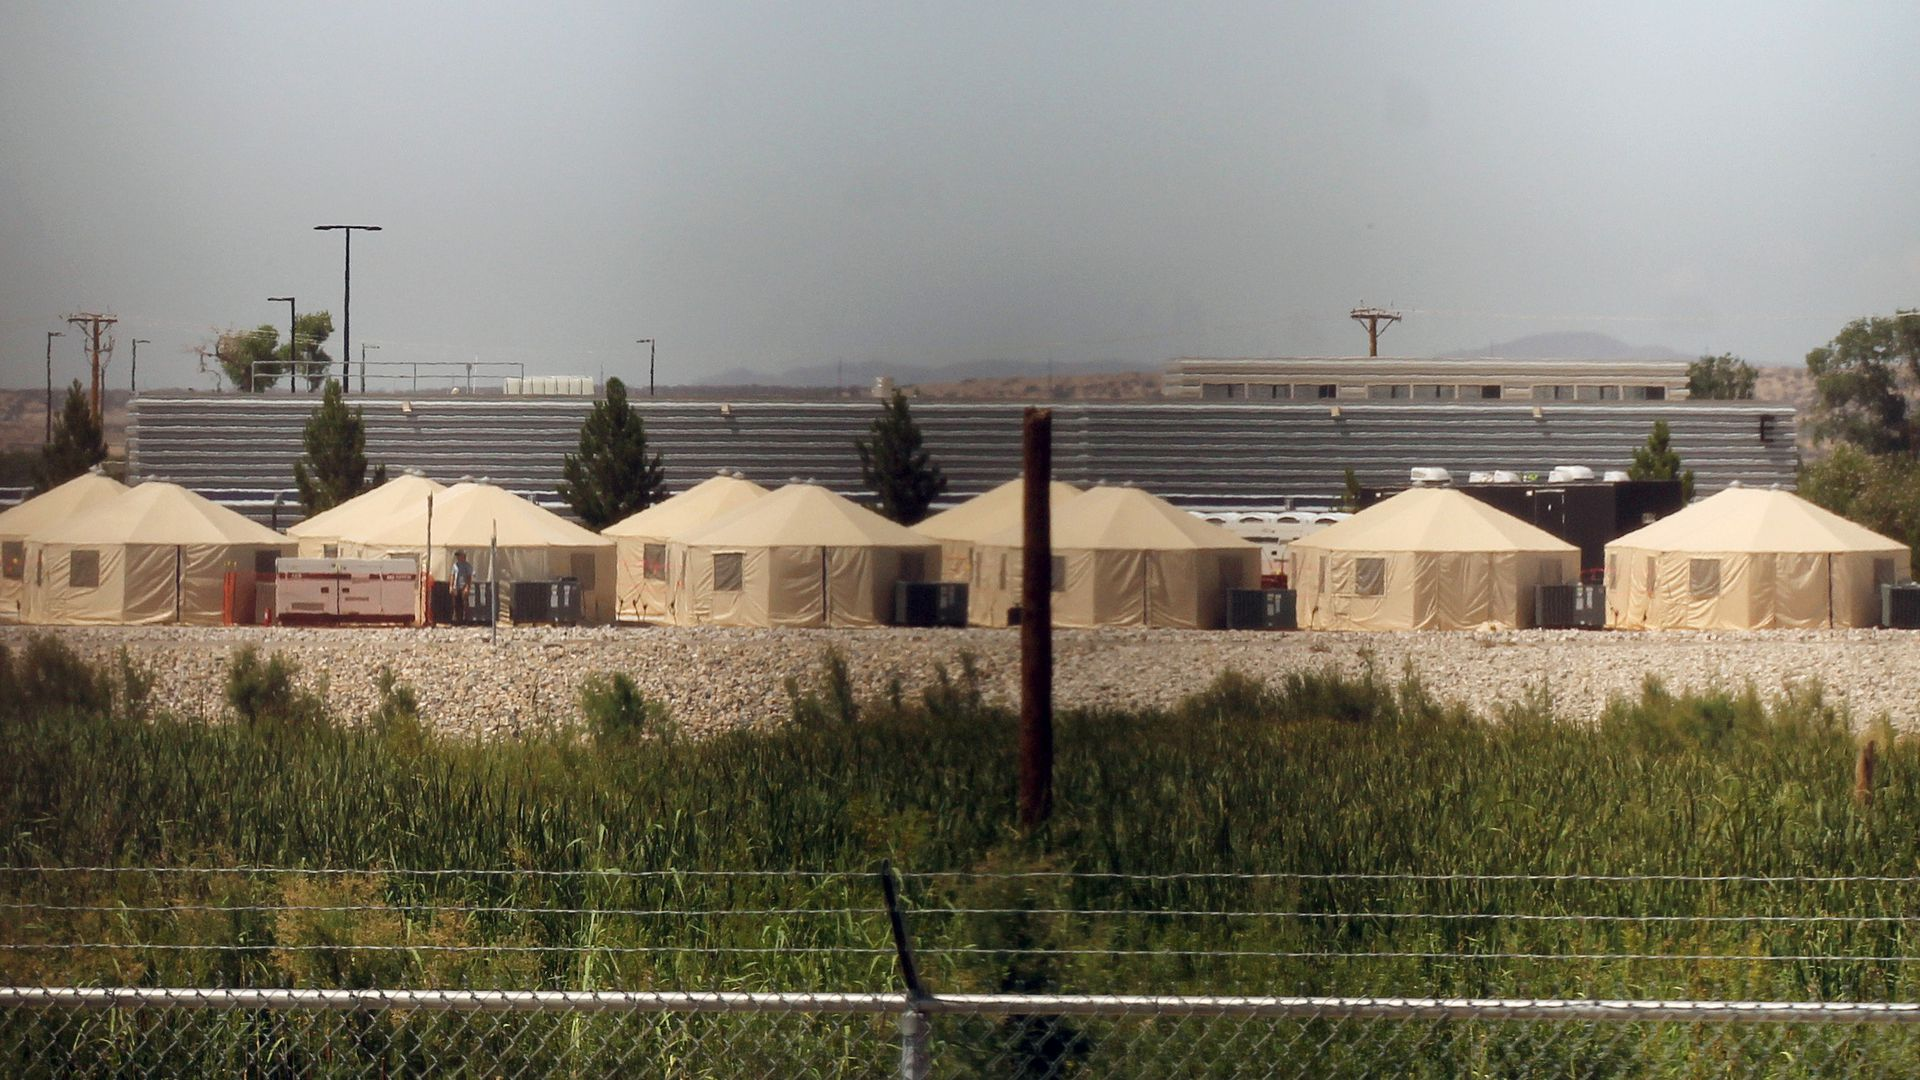 Tents set up behind a barbed wire fence that are used for detaining immigrants.